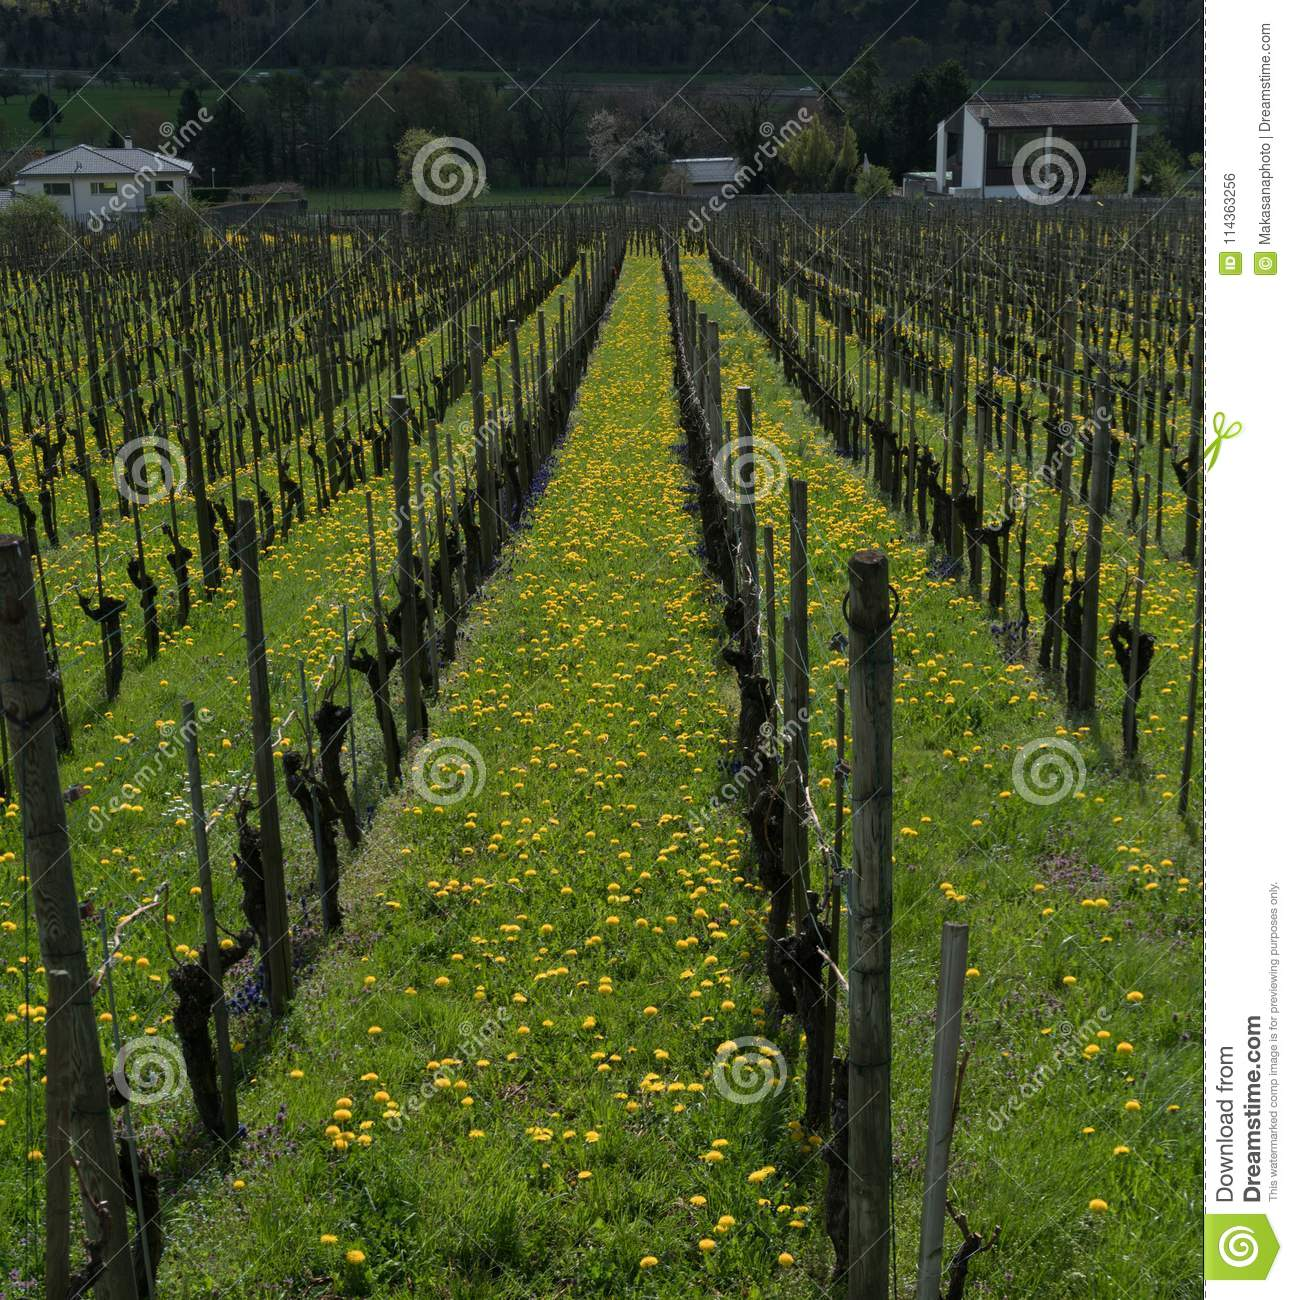 Wonderful View Of Vineyards In Spring With Yellow And Purple Flowers